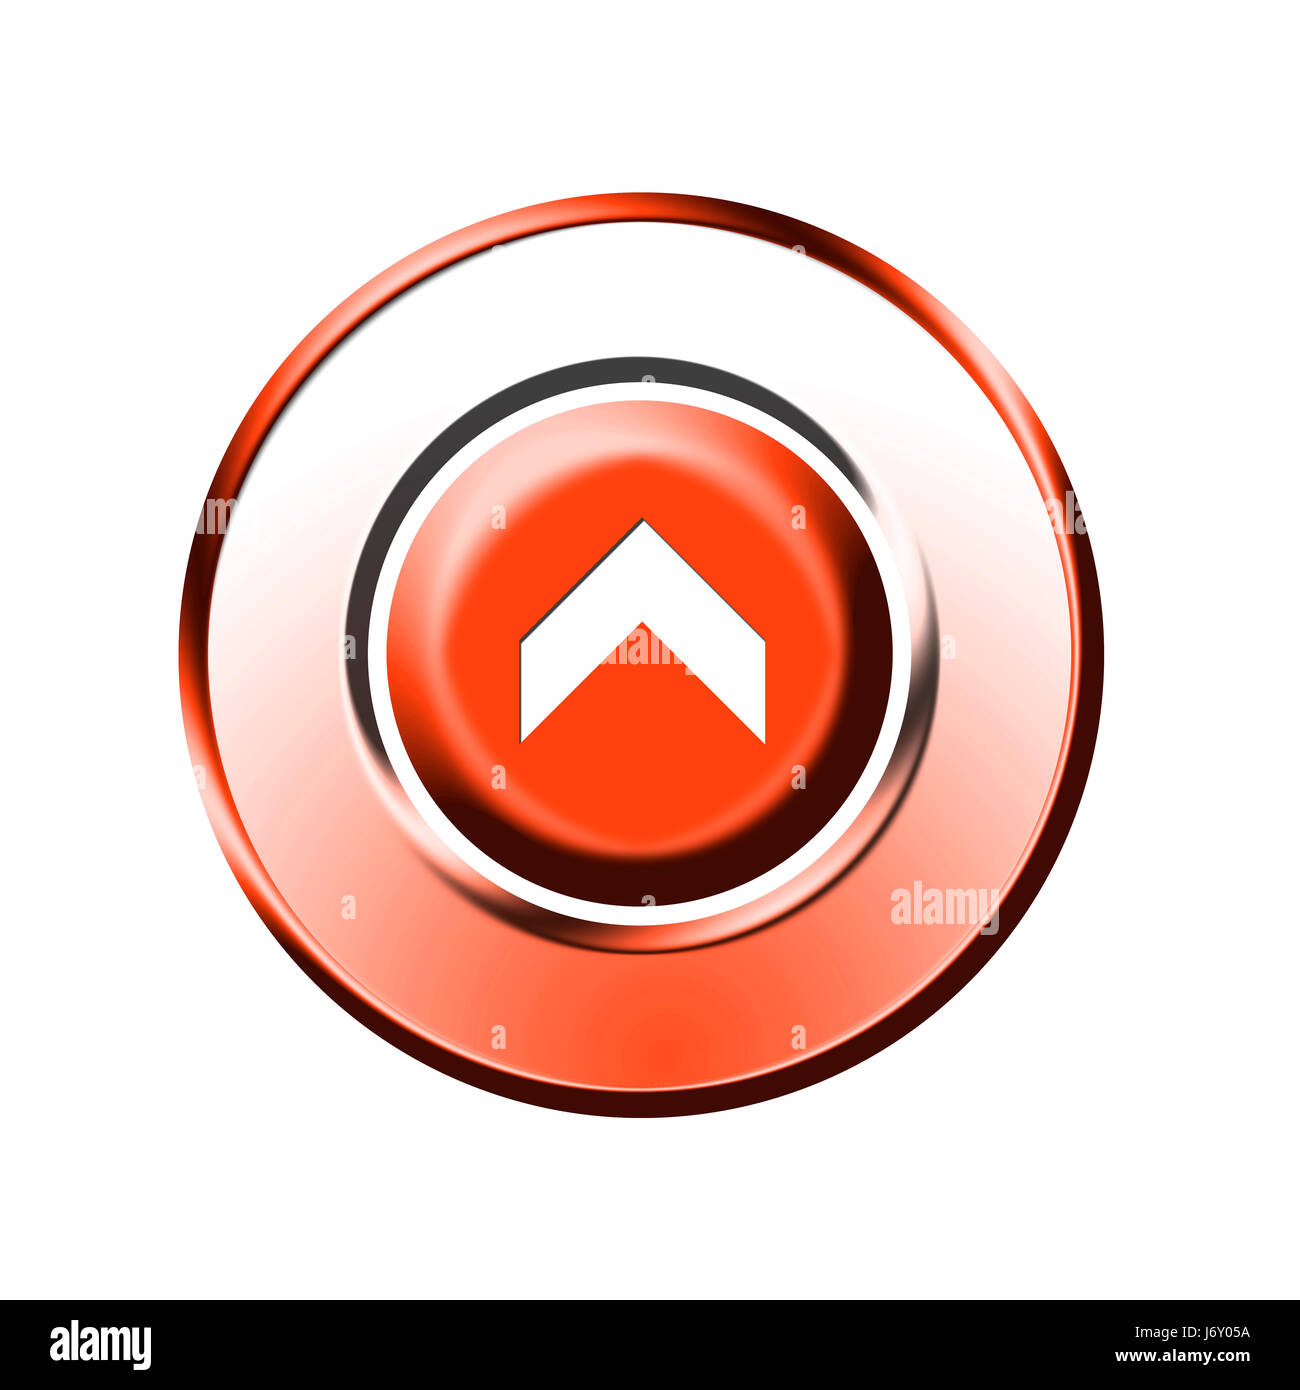 up button Stock Photo